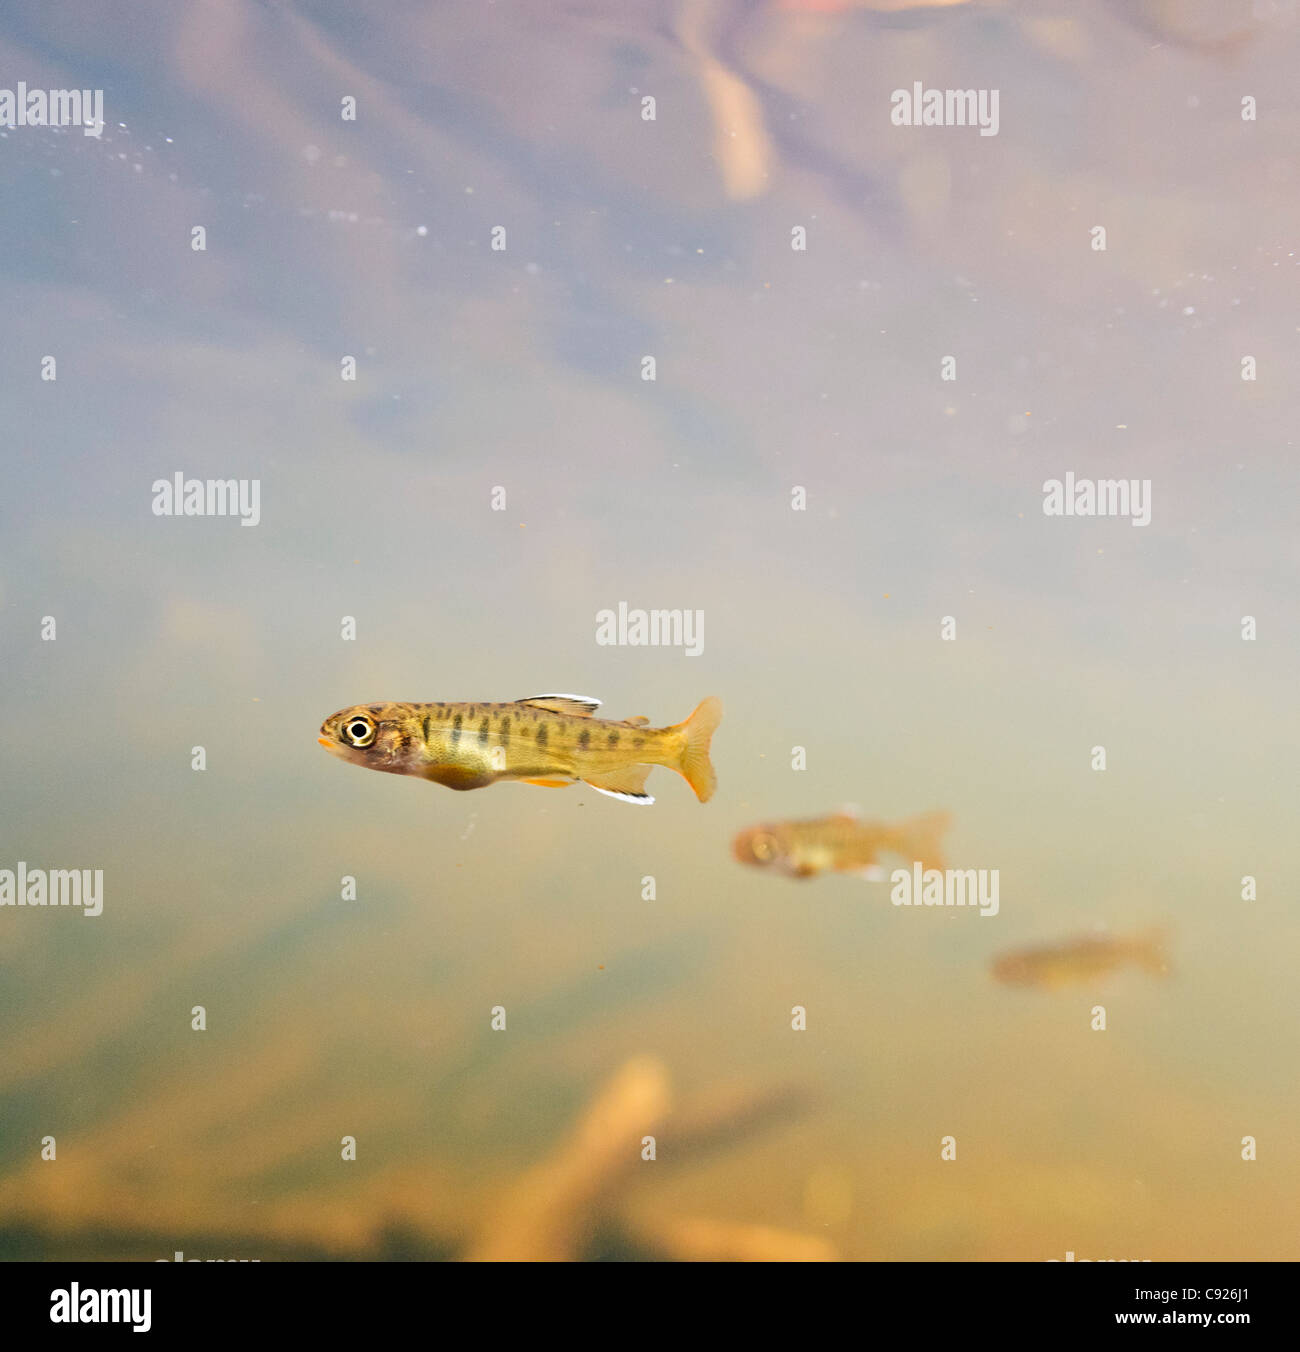 Underwater view of Coho salmon fry rearing in the tannin stained water of 18-mile Creek, Copper River Delta, Alaska - Stock Image